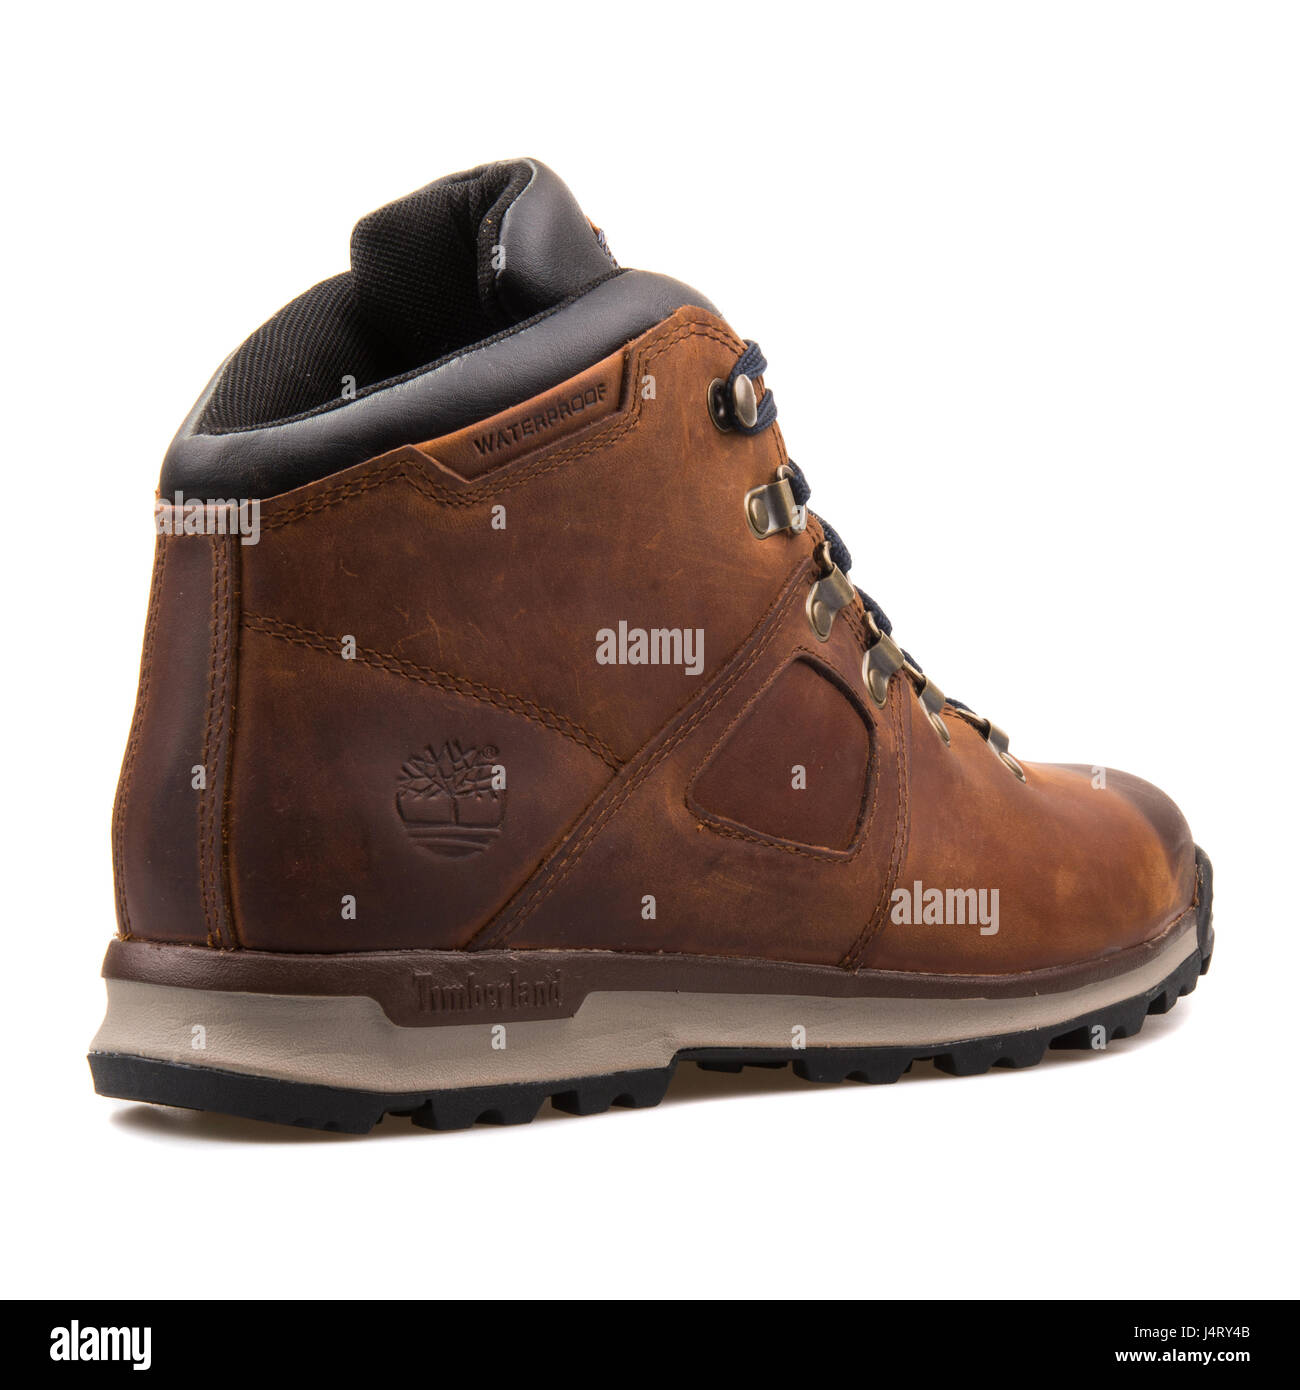 Timberland Earthkeepers Ekscramble GT Scramble Midlthr Brown Boots - 2210R - Stock Image